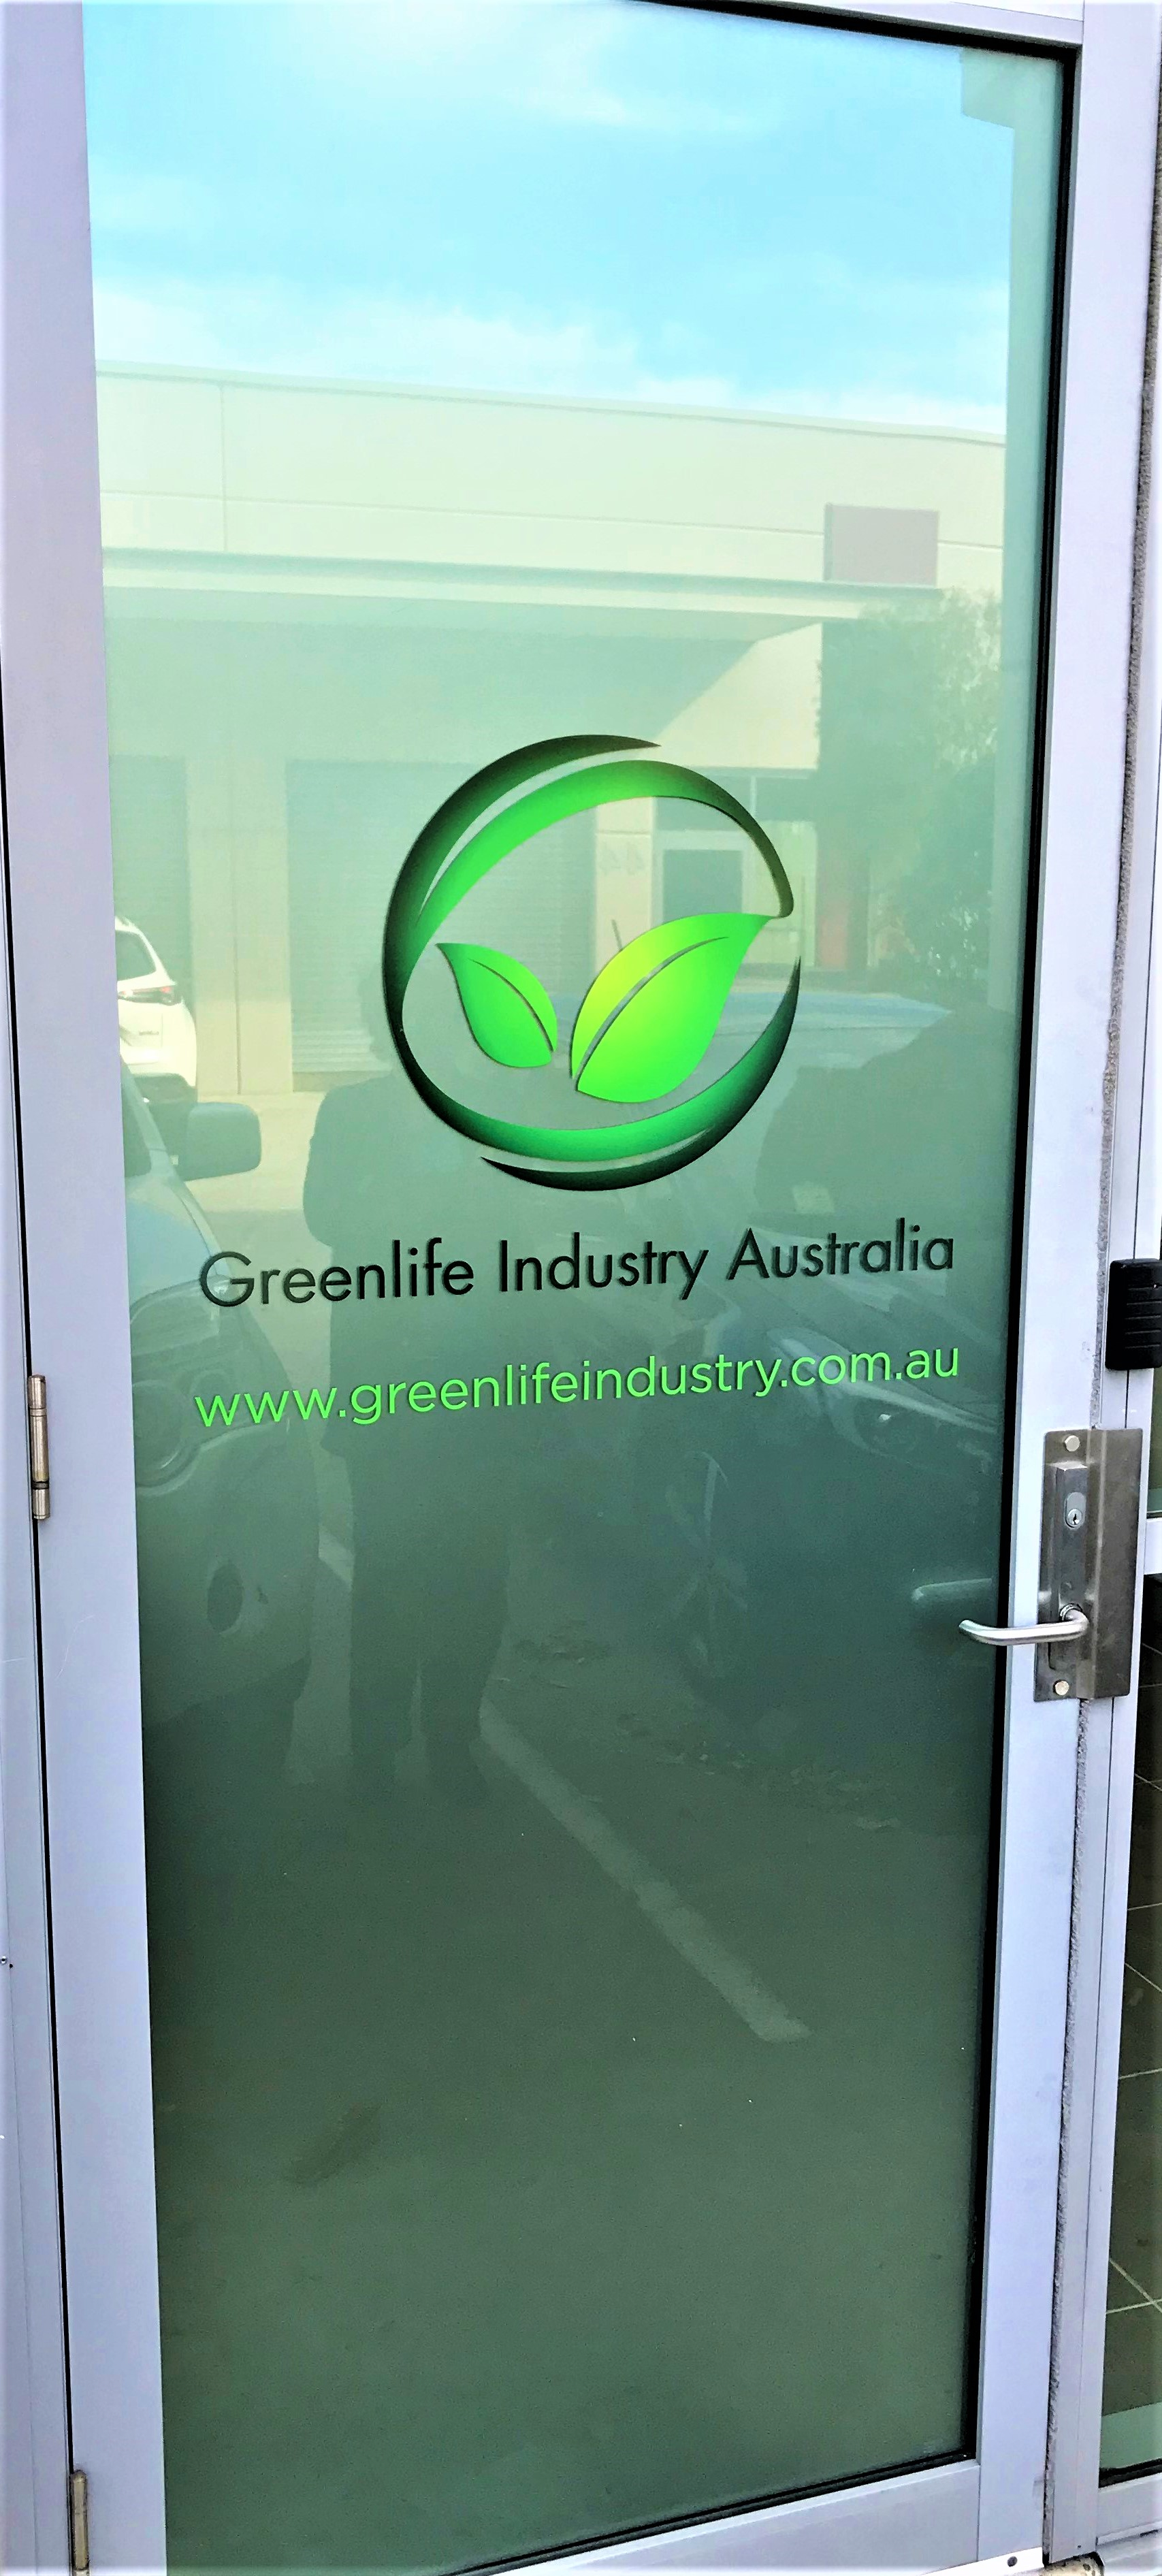 Greenlife Entry General Signage NSW